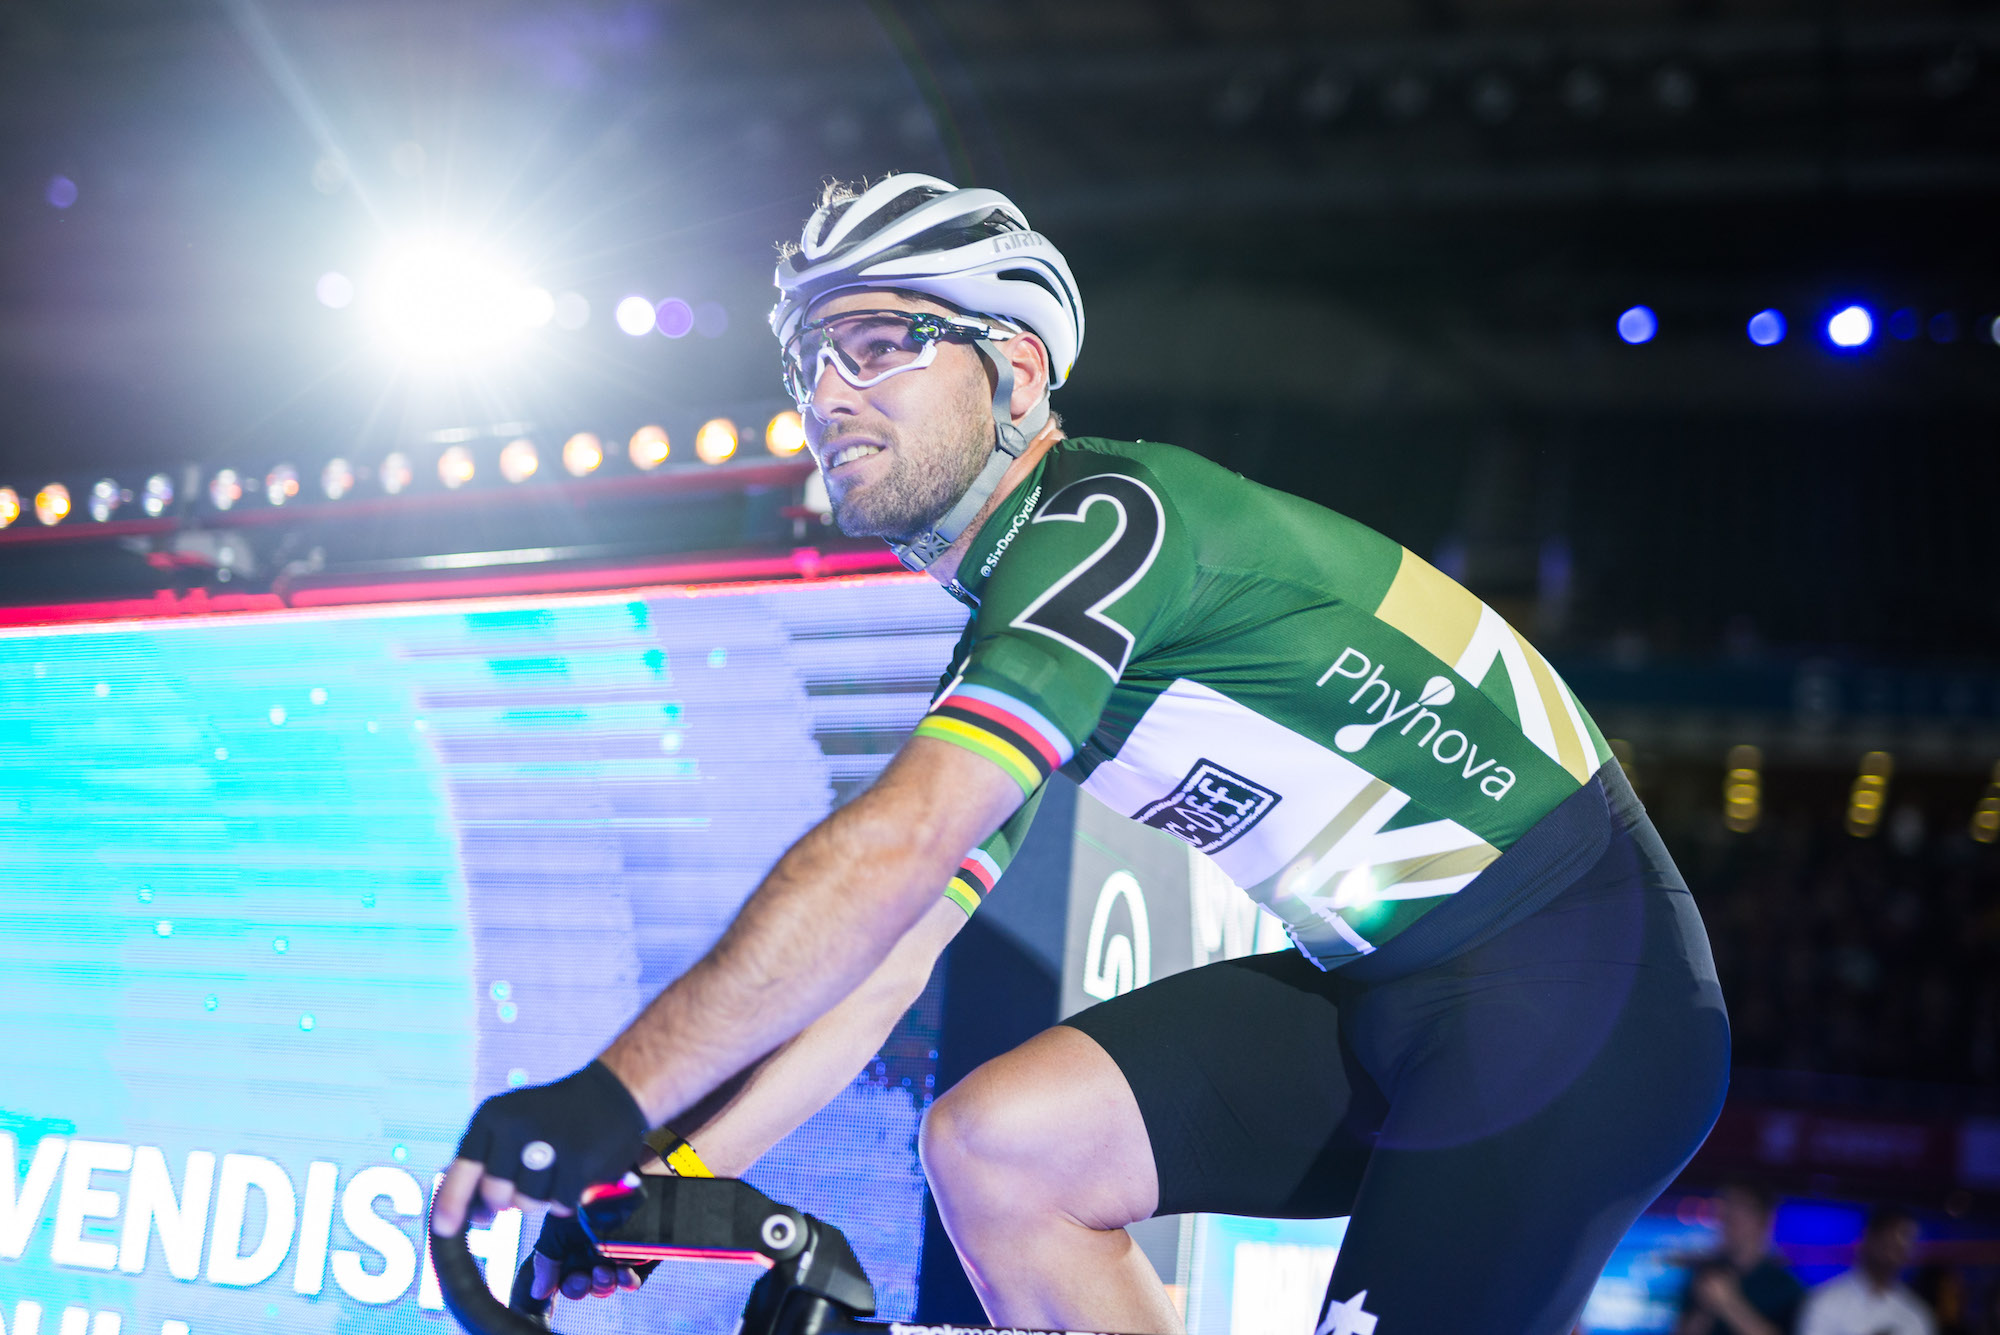 Mark Cavendish's chances of riding Olympics are diminishing, says British Cycling coach